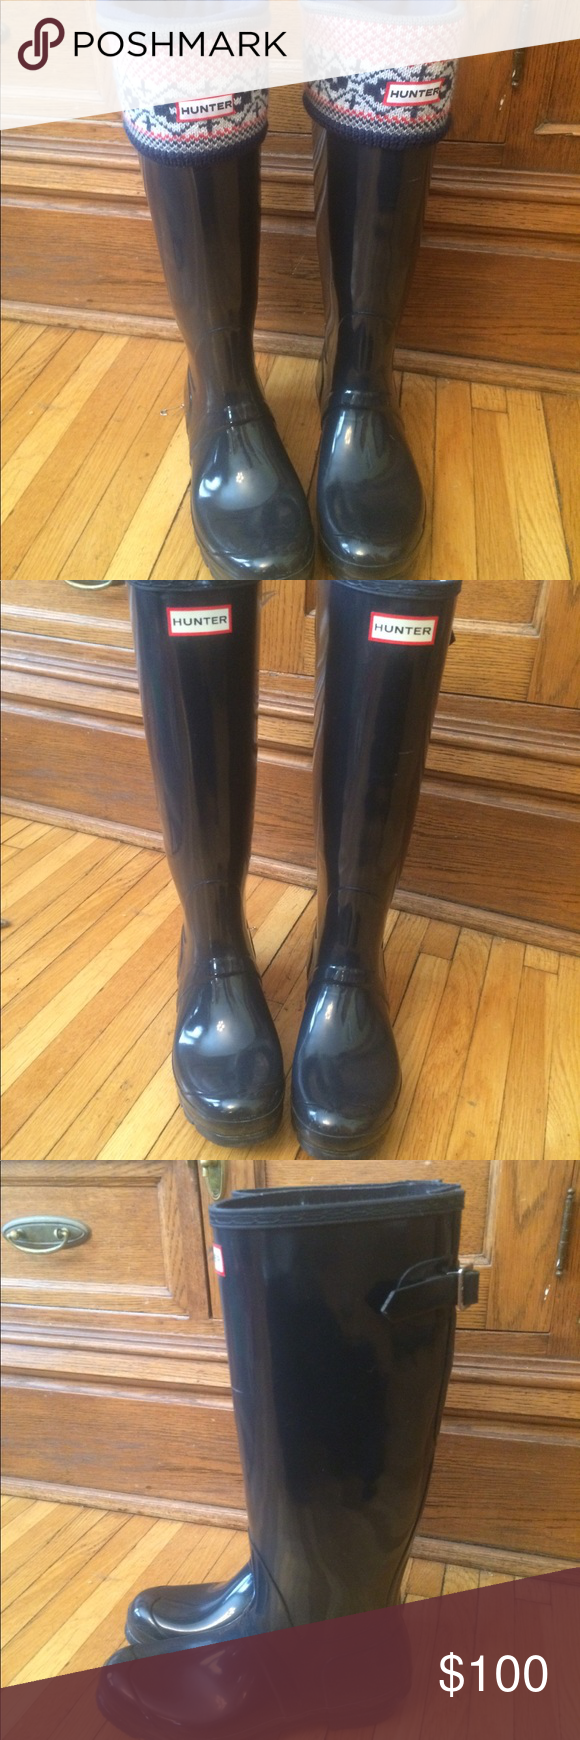 def8ab0a279 Hunter tall rain boot   Hunter boot socks These boots are High gloss Navy  color I